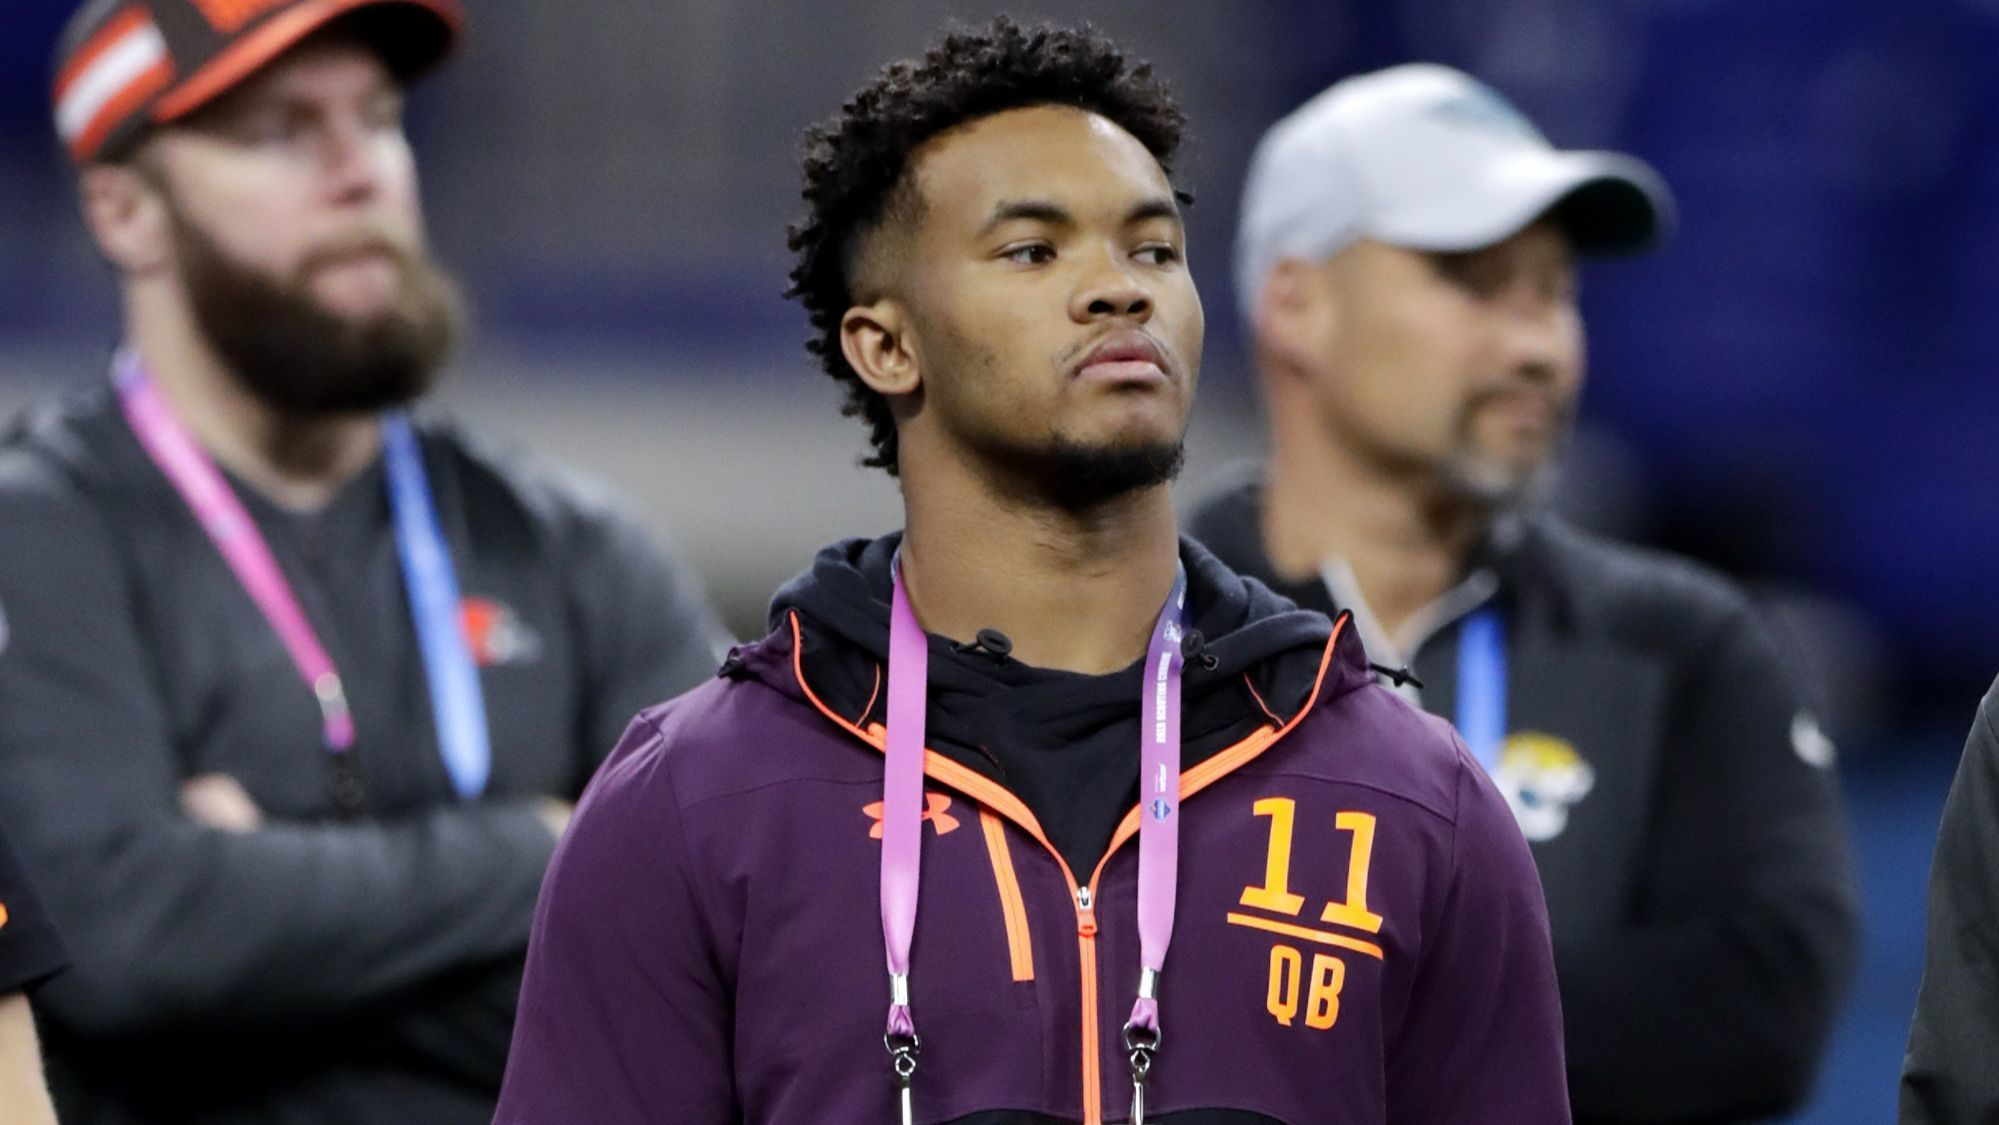 NFL mock draft: Look for Raiders to move up to No. 1 to select QB Kyler Murray